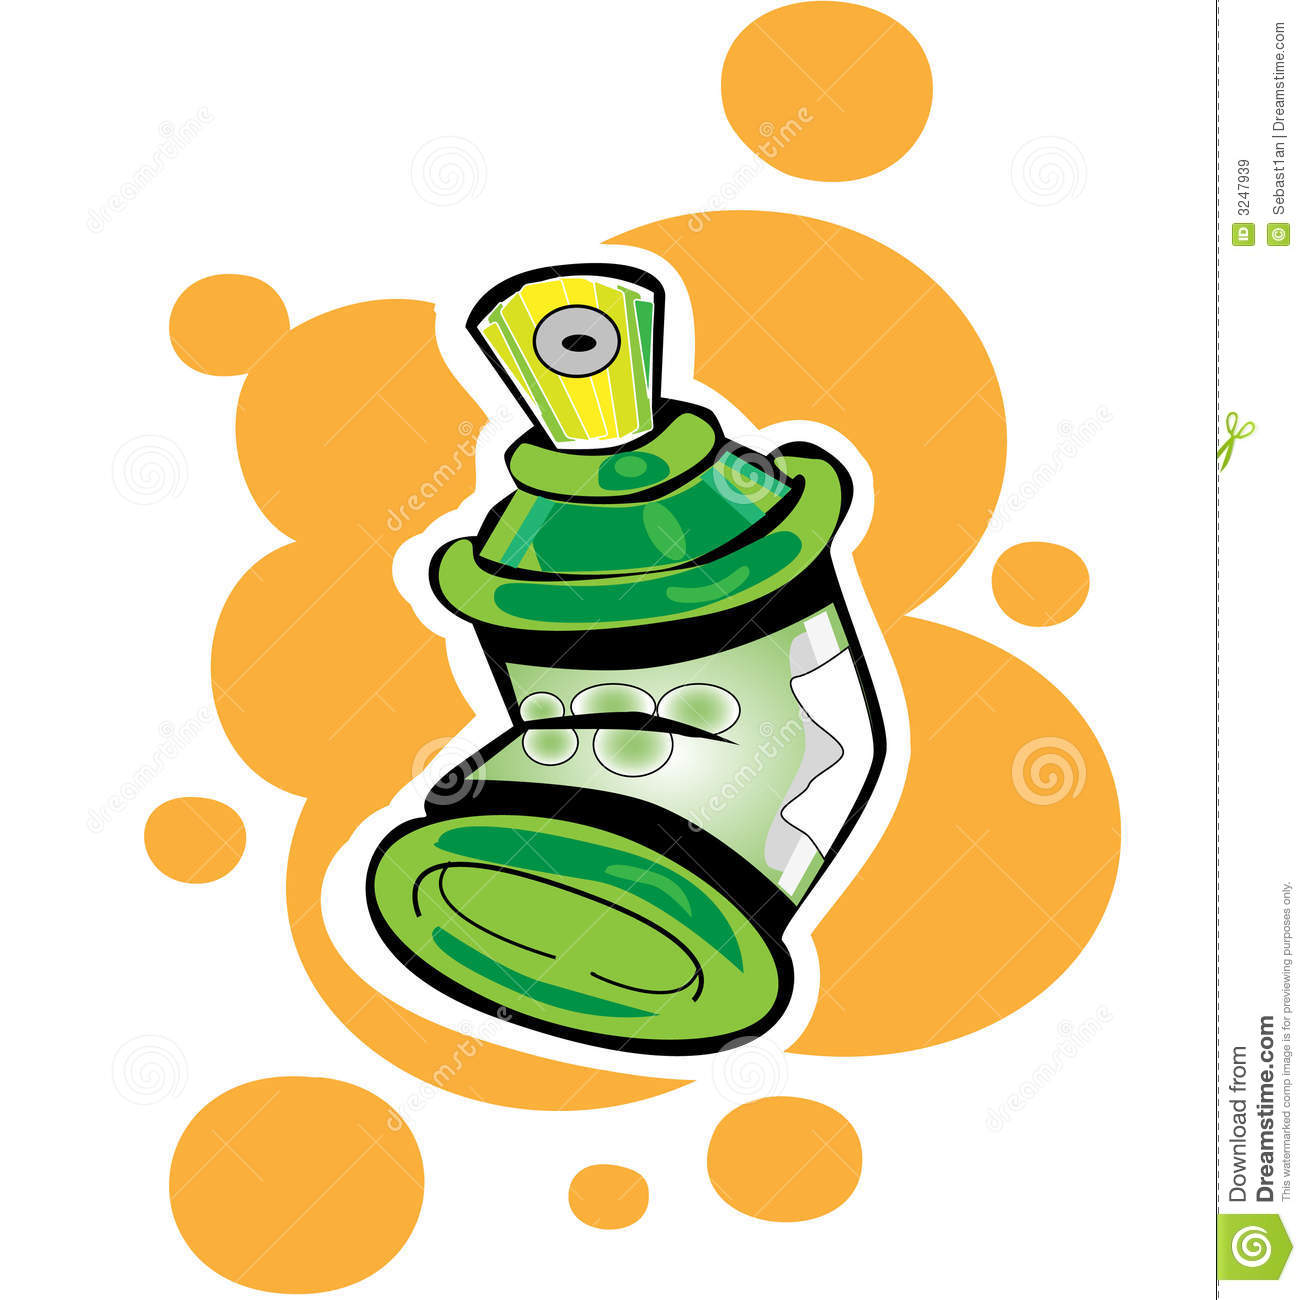 Spray Cans Royalty Free Stock Images - Image: 3247939